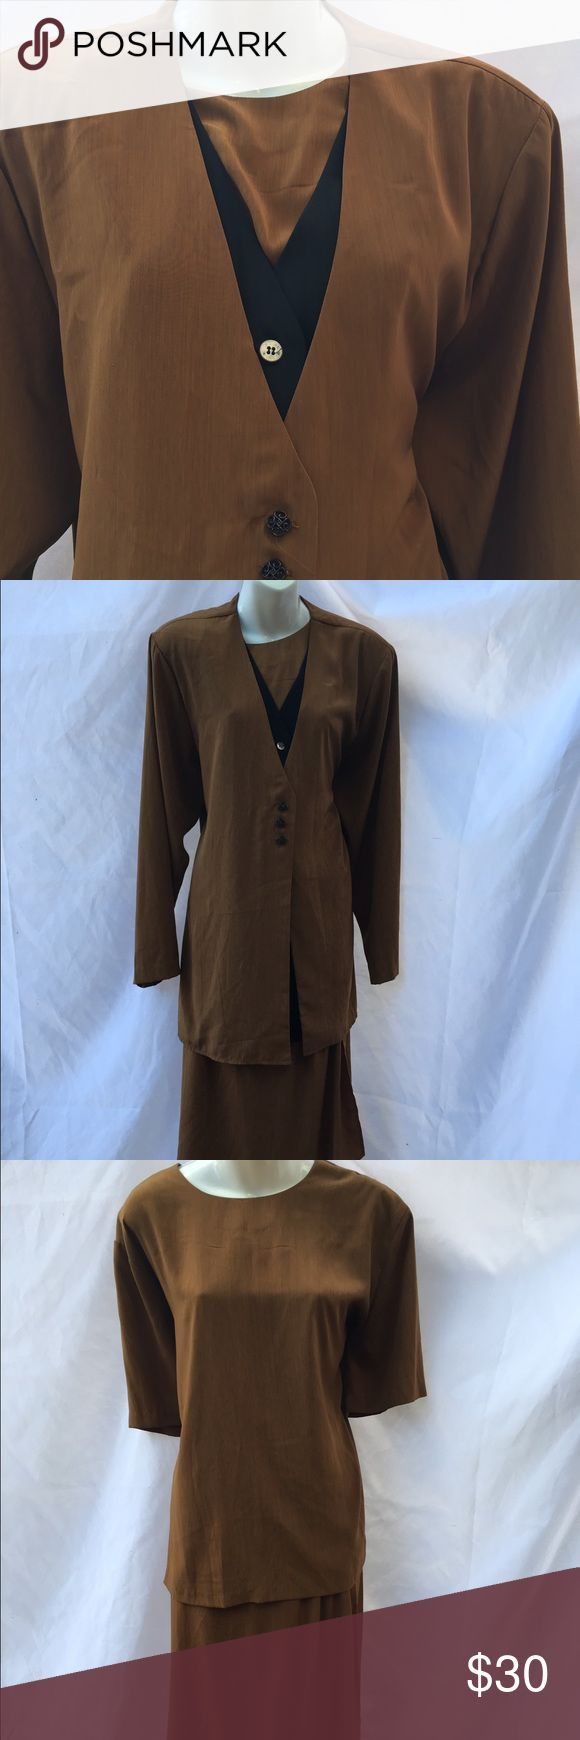 3 Piece Suit Set Brown and black 3 piece suit. Includes jacket, short sleeve shirt, and skirt. Skirt has elastic and jacket has shoulder pads. 100% polyester. ‼️Size 18/20‼️ S.G. Sport Collection Skirts Skirt Sets